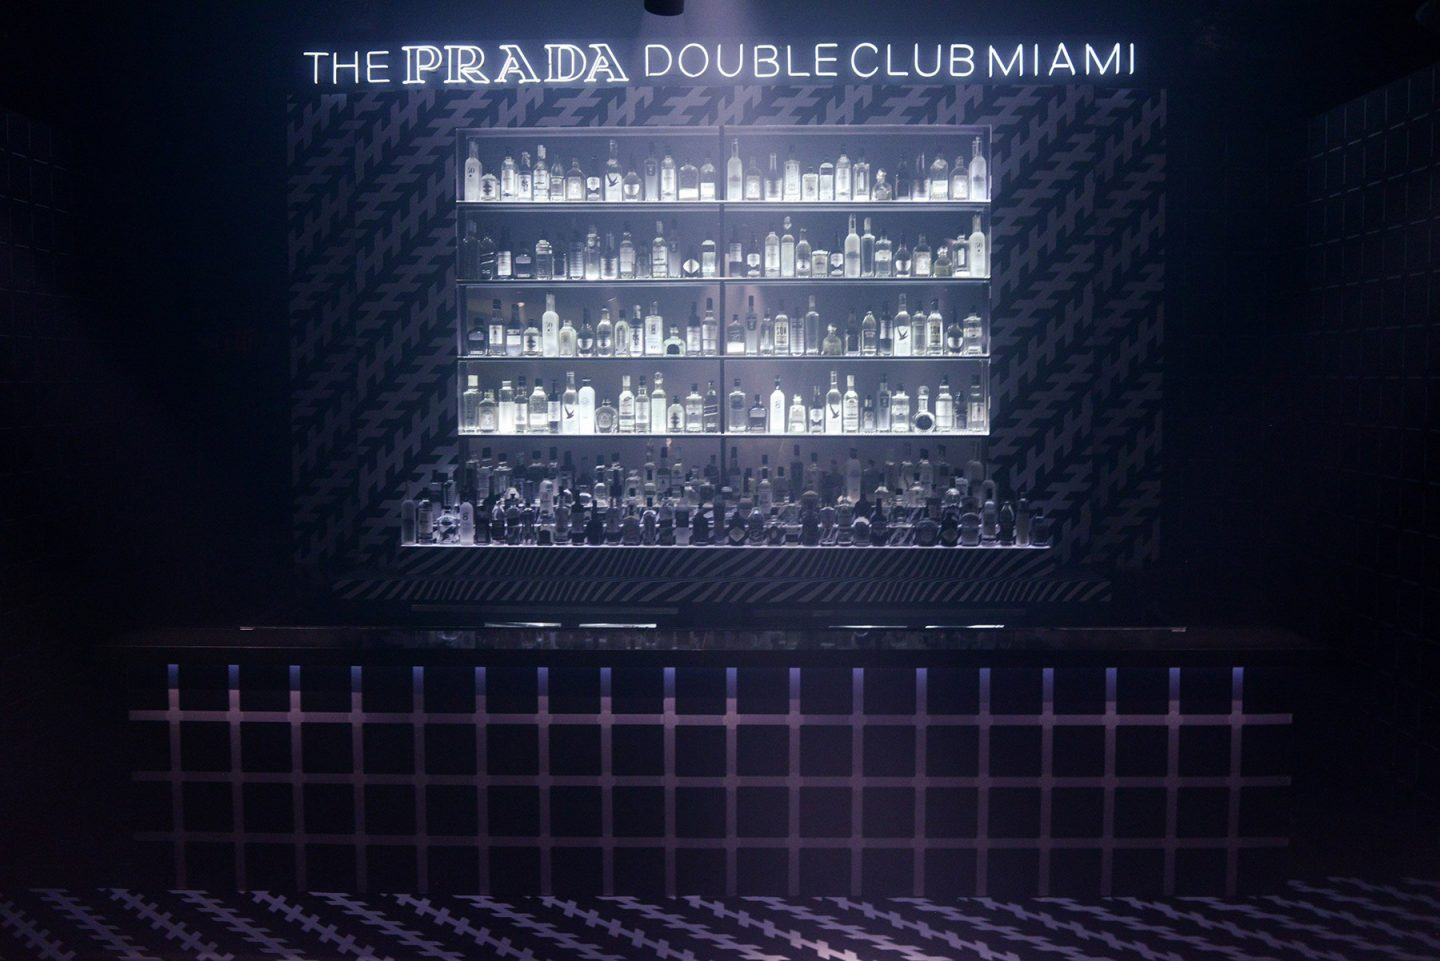 iGNANT-Art-Carsten-Höller-The-Prada-Double-Club-Miami-02